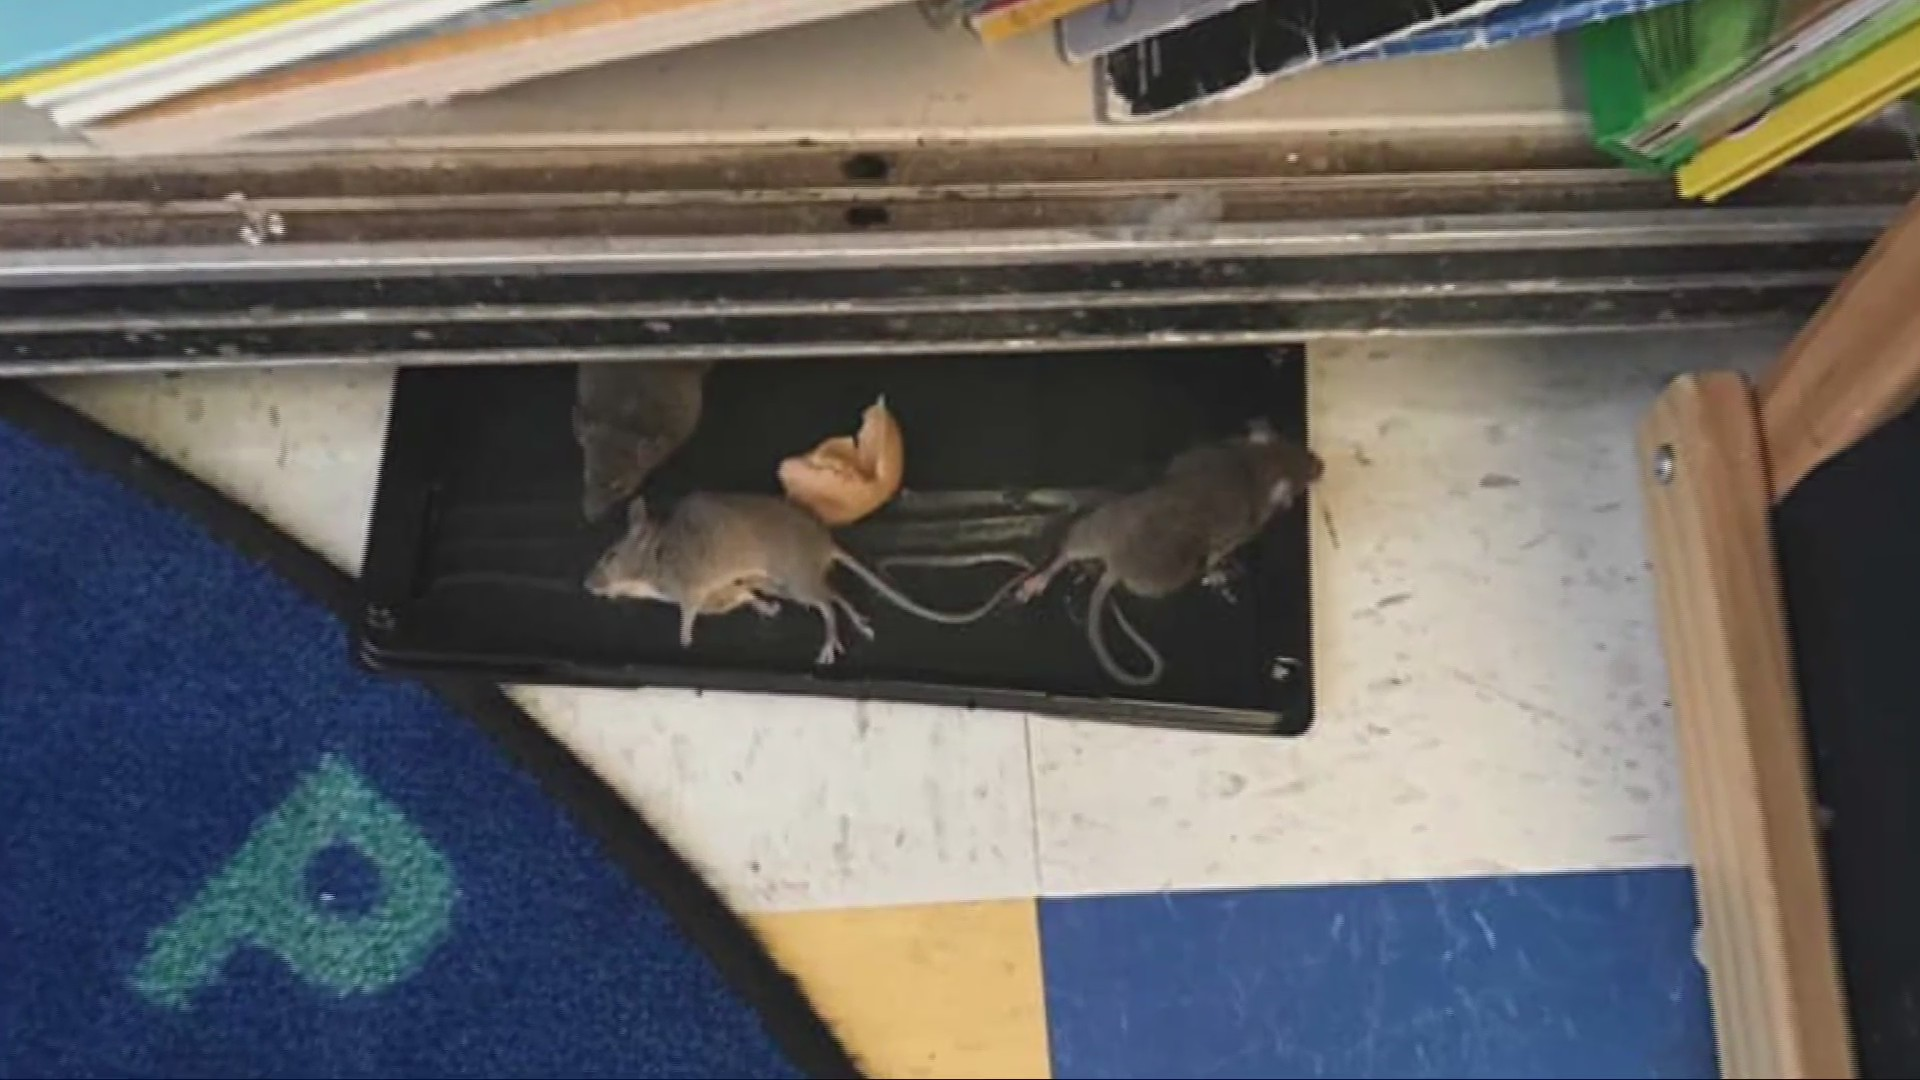 Mice Problem at Elementary School Raises Parents' Concerns on Safety